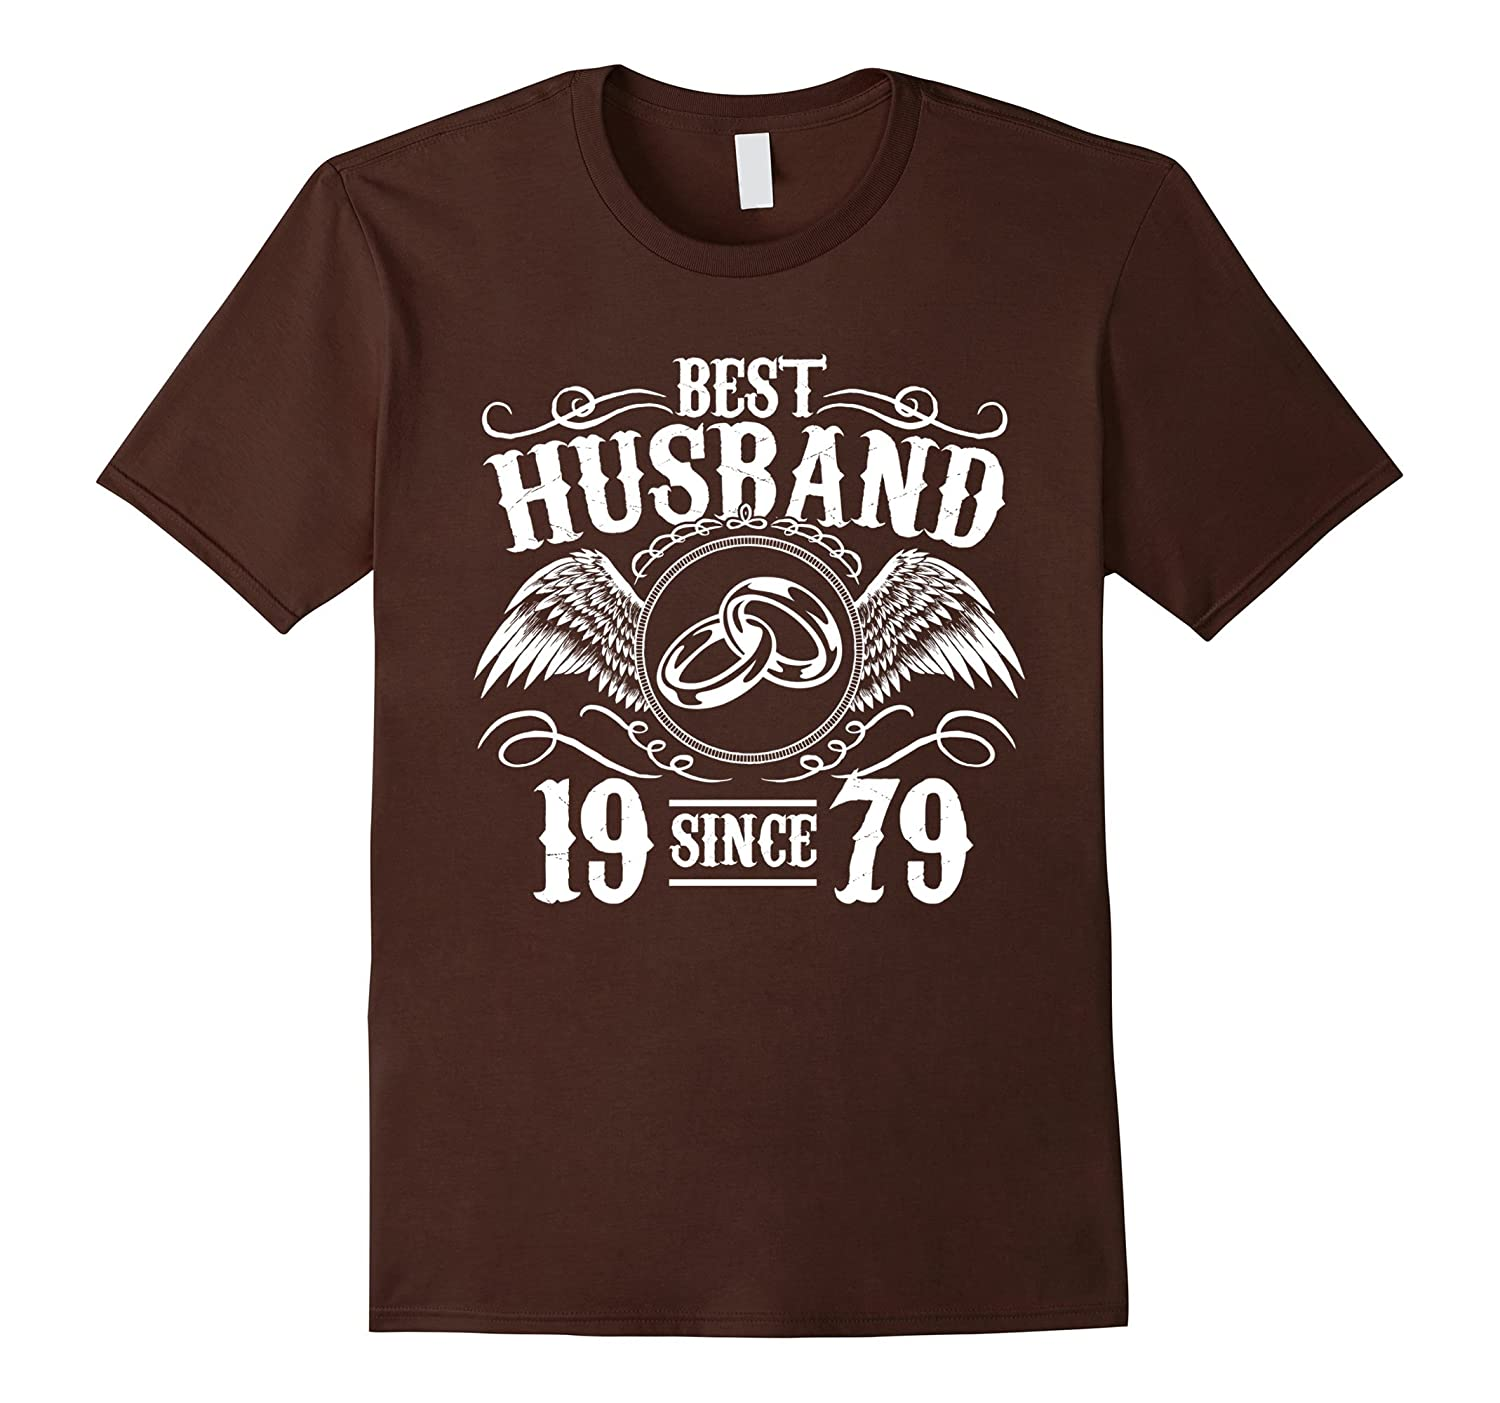 38th Wedding Anniversary Gift Ideas: Great T-Shirt For Husband 38th Wedding Anniversary Gift